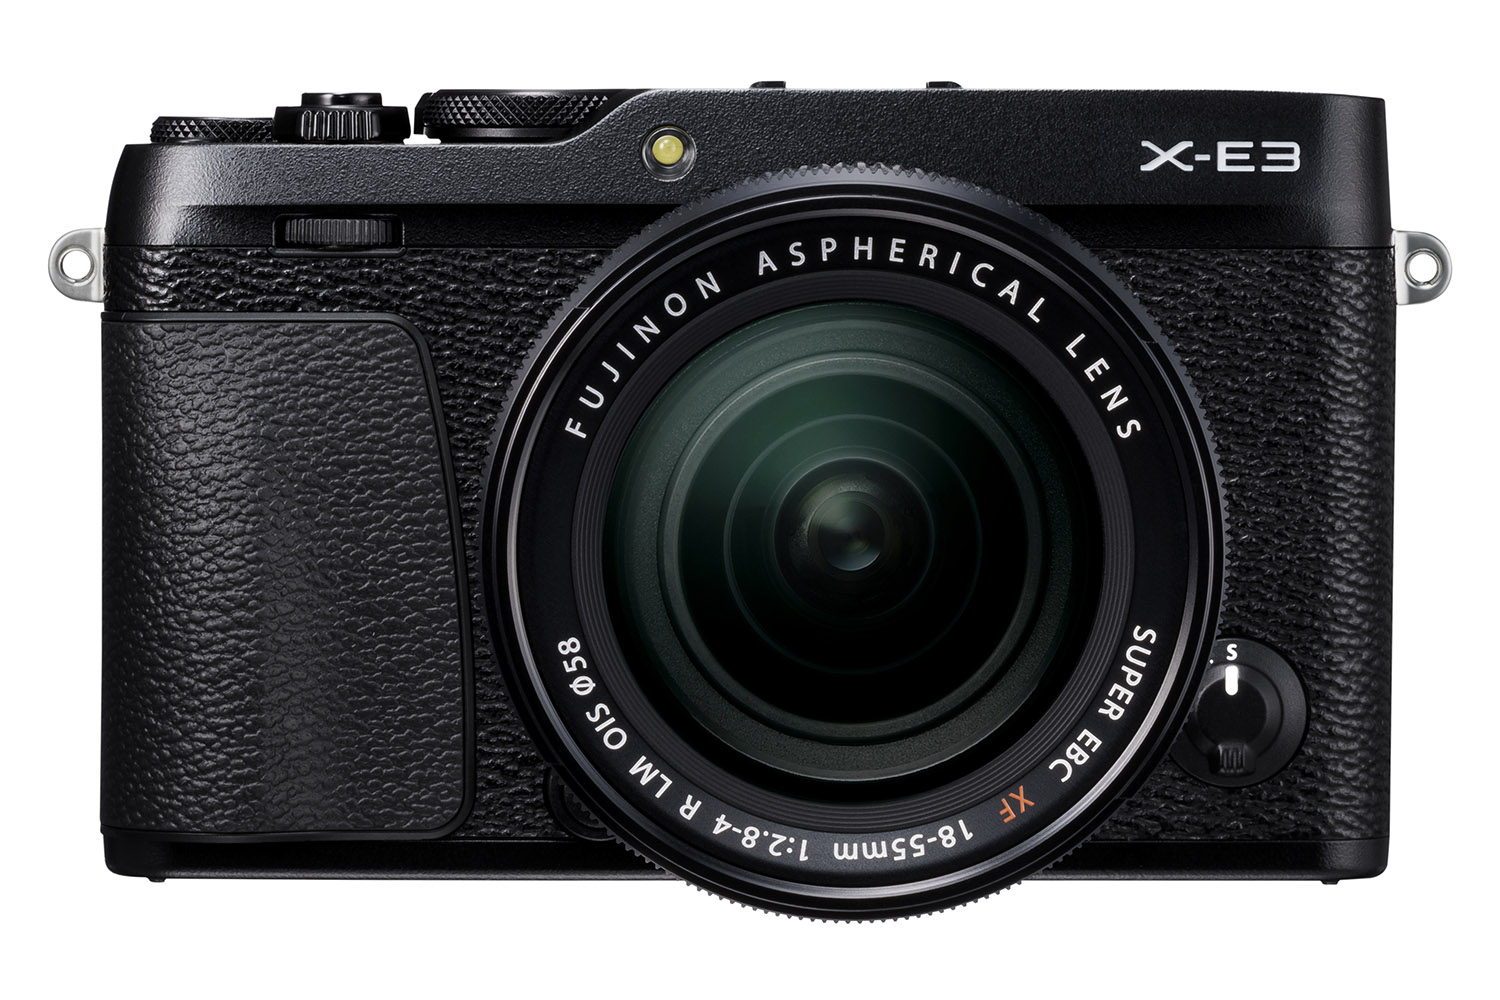 The Fujifilm X-E3 is the latest addition to the X Series range of mirrorless cameras